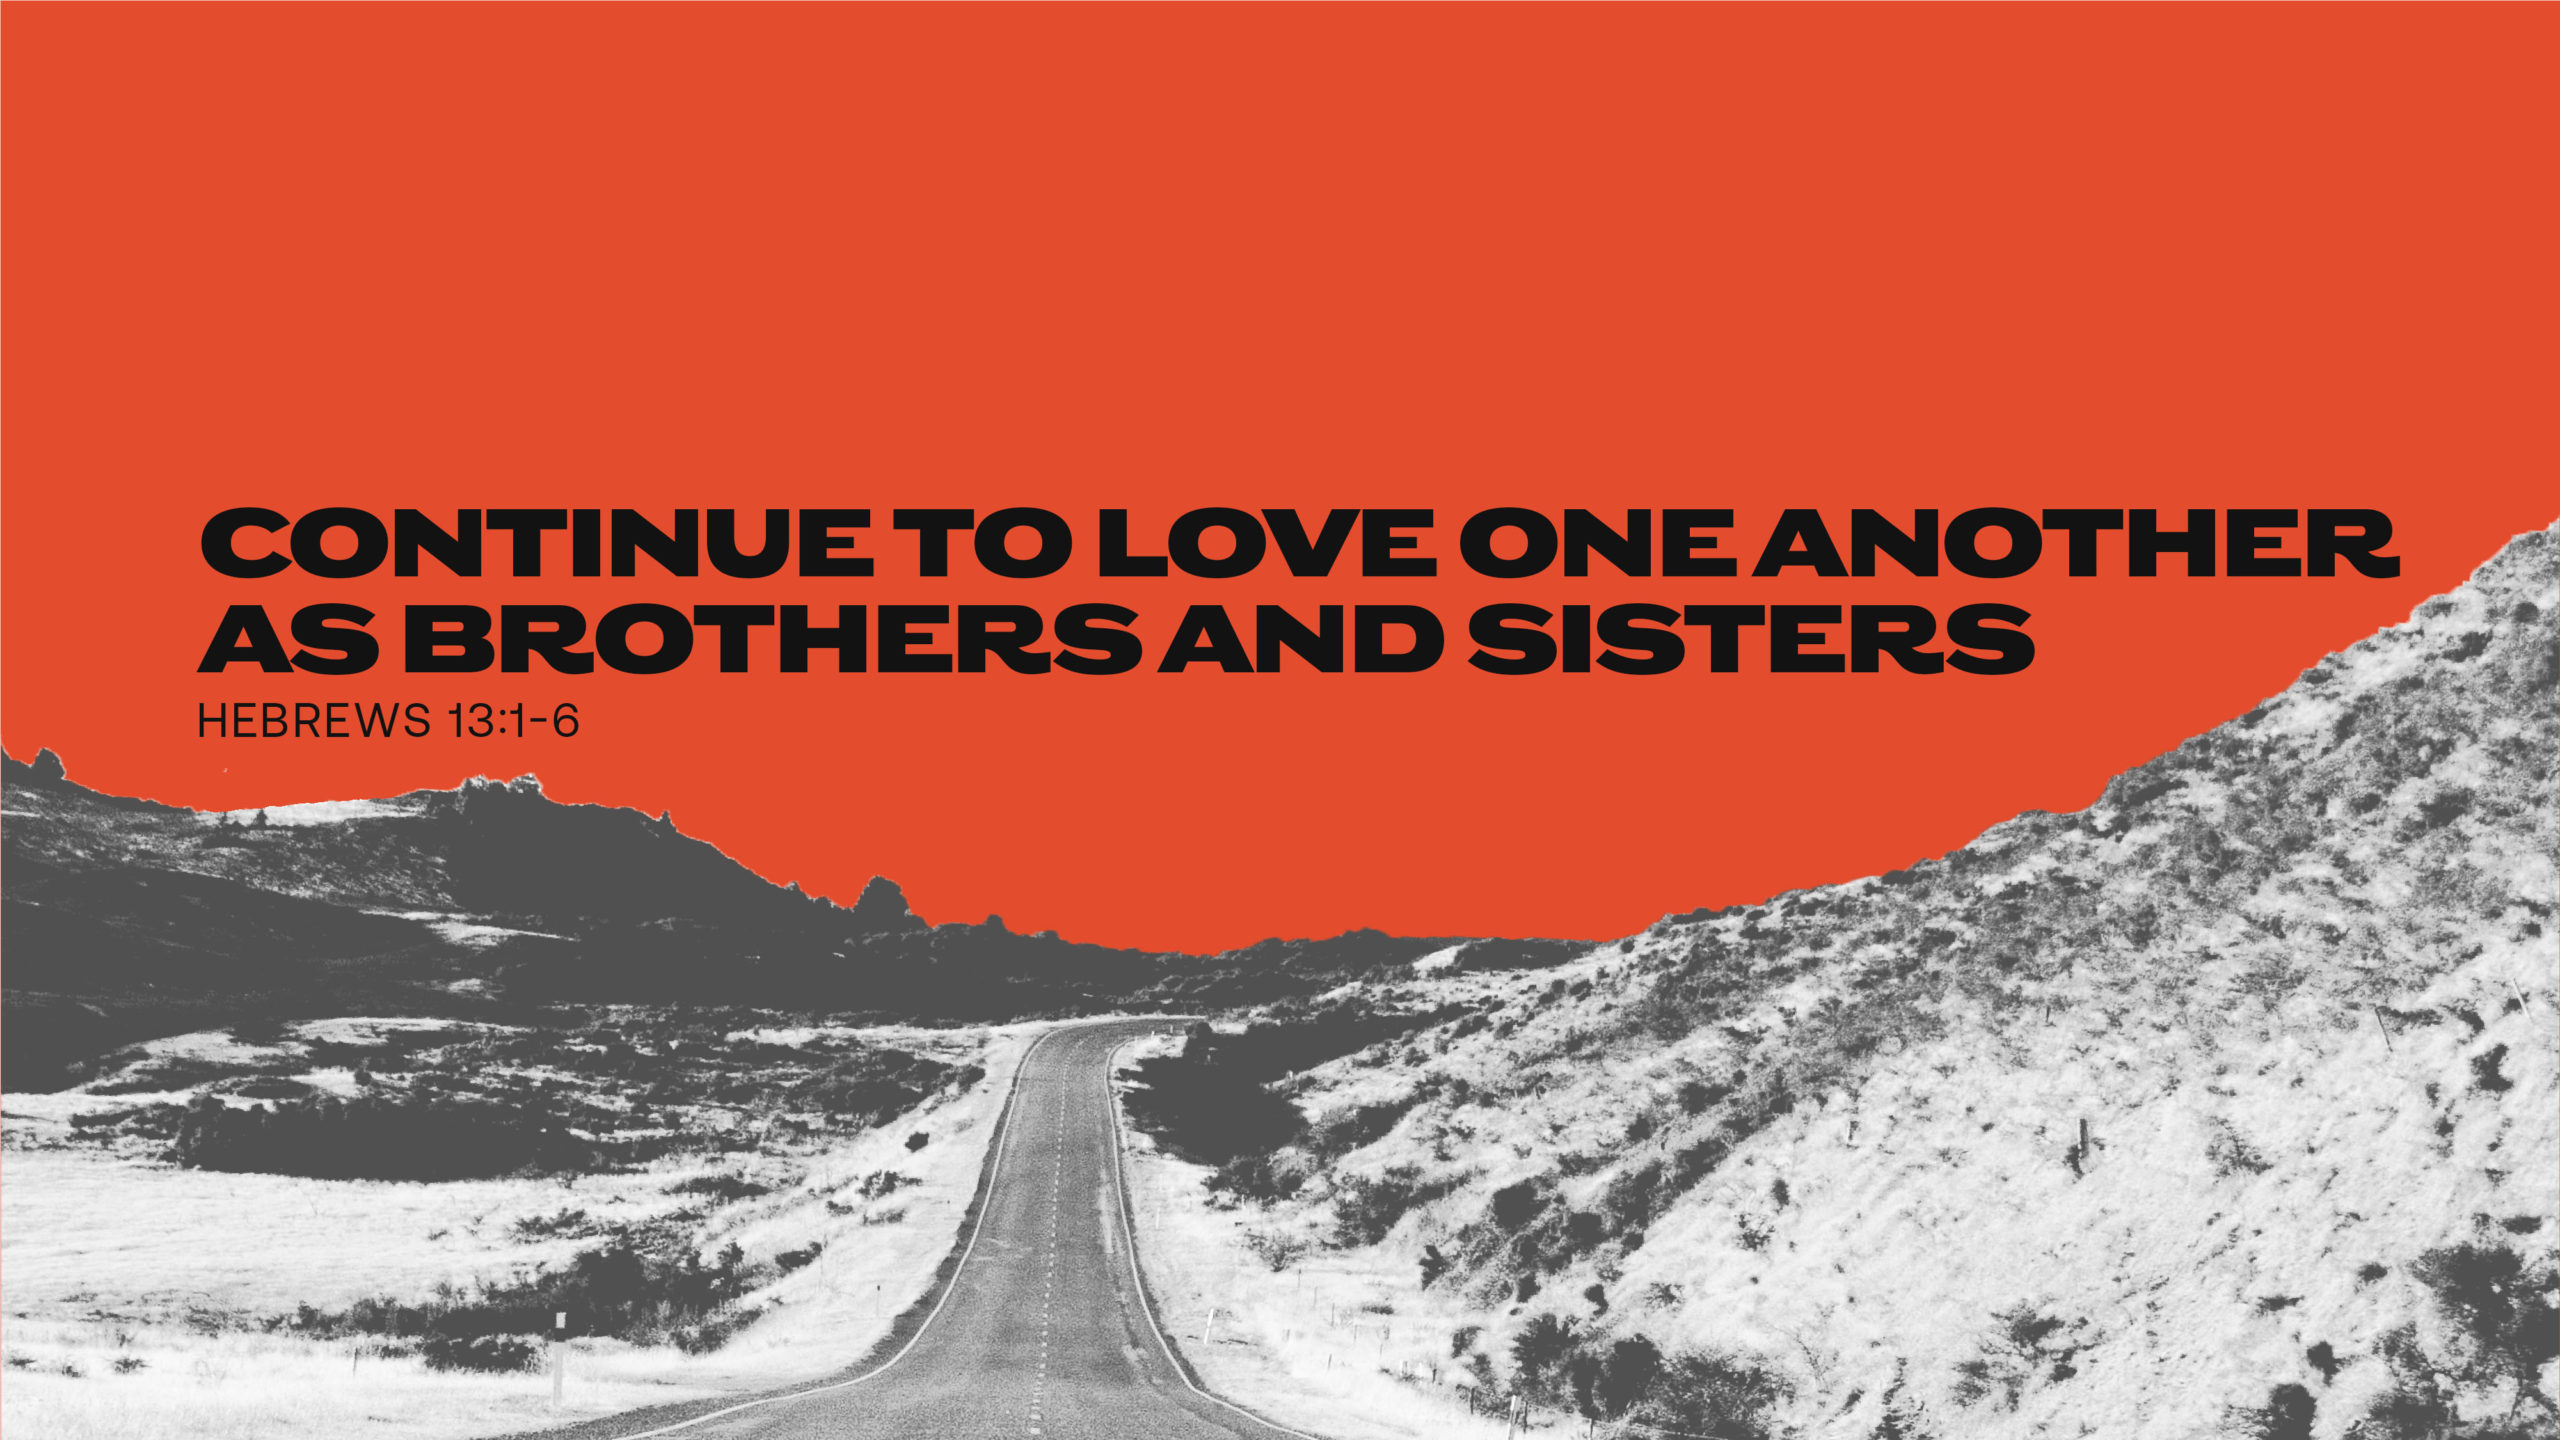 Continue to Love One Another as Brothers and Sisters